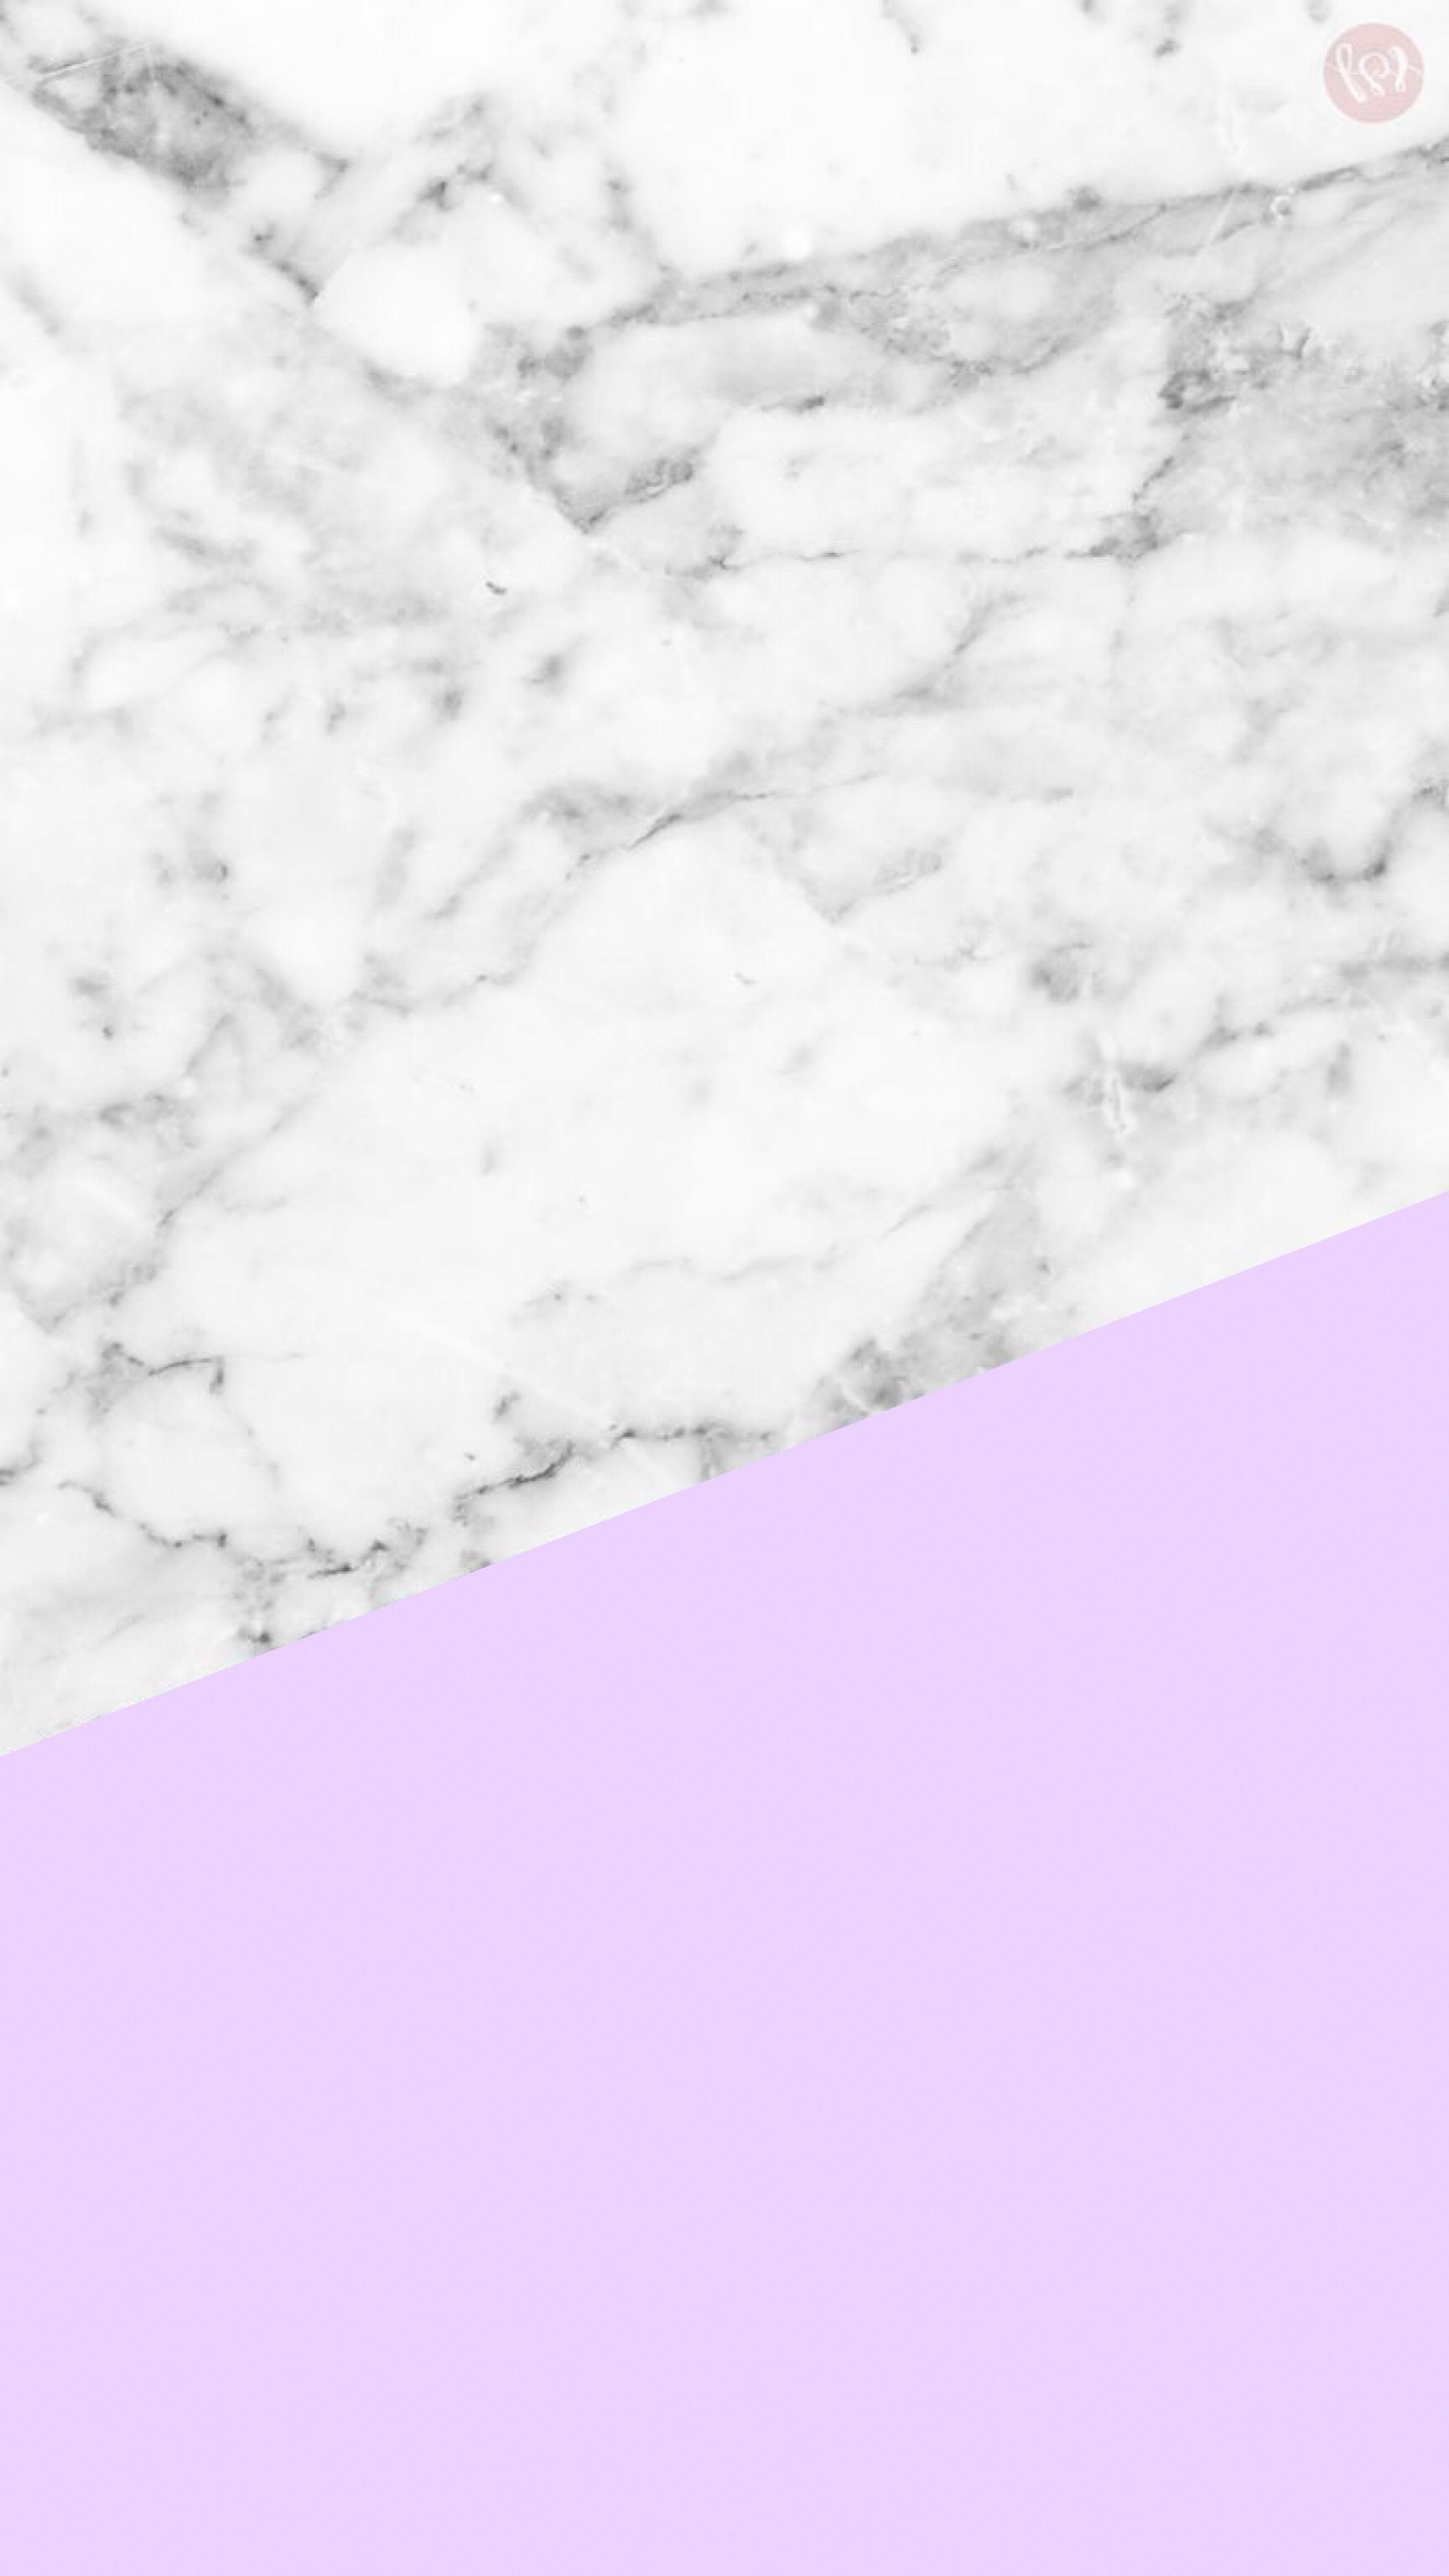 Pin By Katty On Oboi Marbel Background Youtube Banner Backgrounds Marble Background